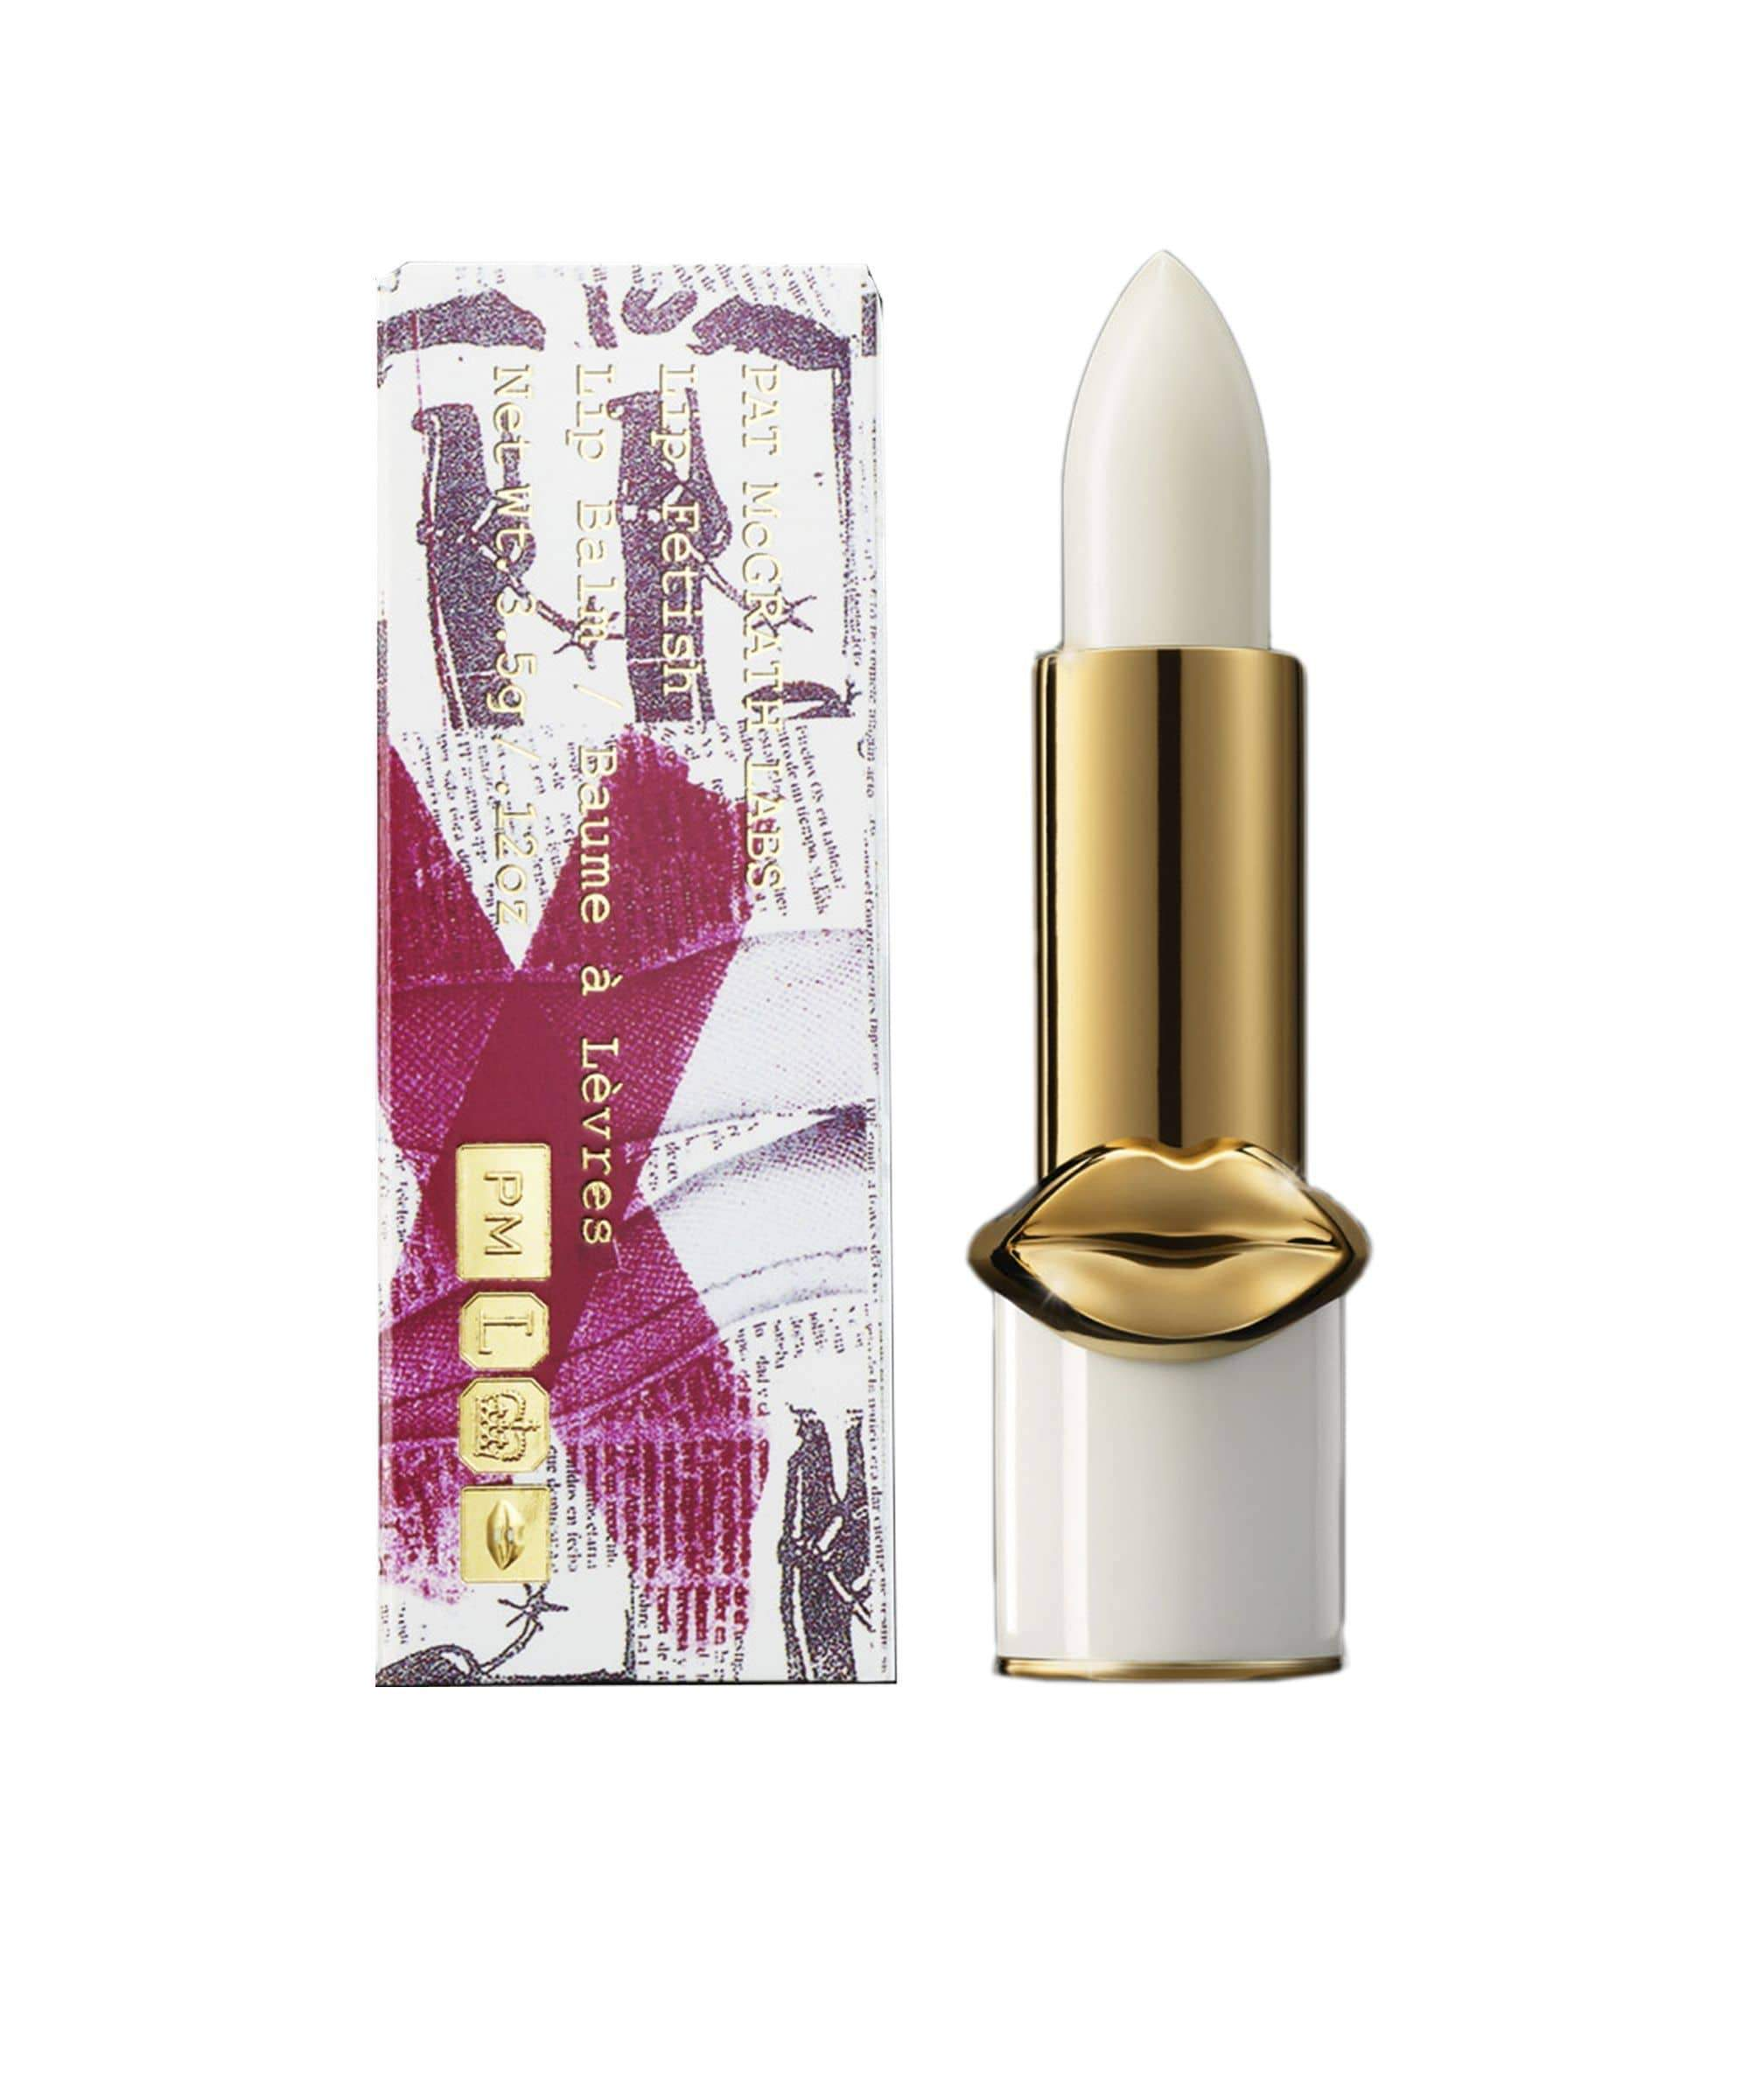 PAT MCGRATH LABS Lip Fetish Lip Balm - Clear, 3.5g | 0.12oz, Lipstick, London Loves Beauty